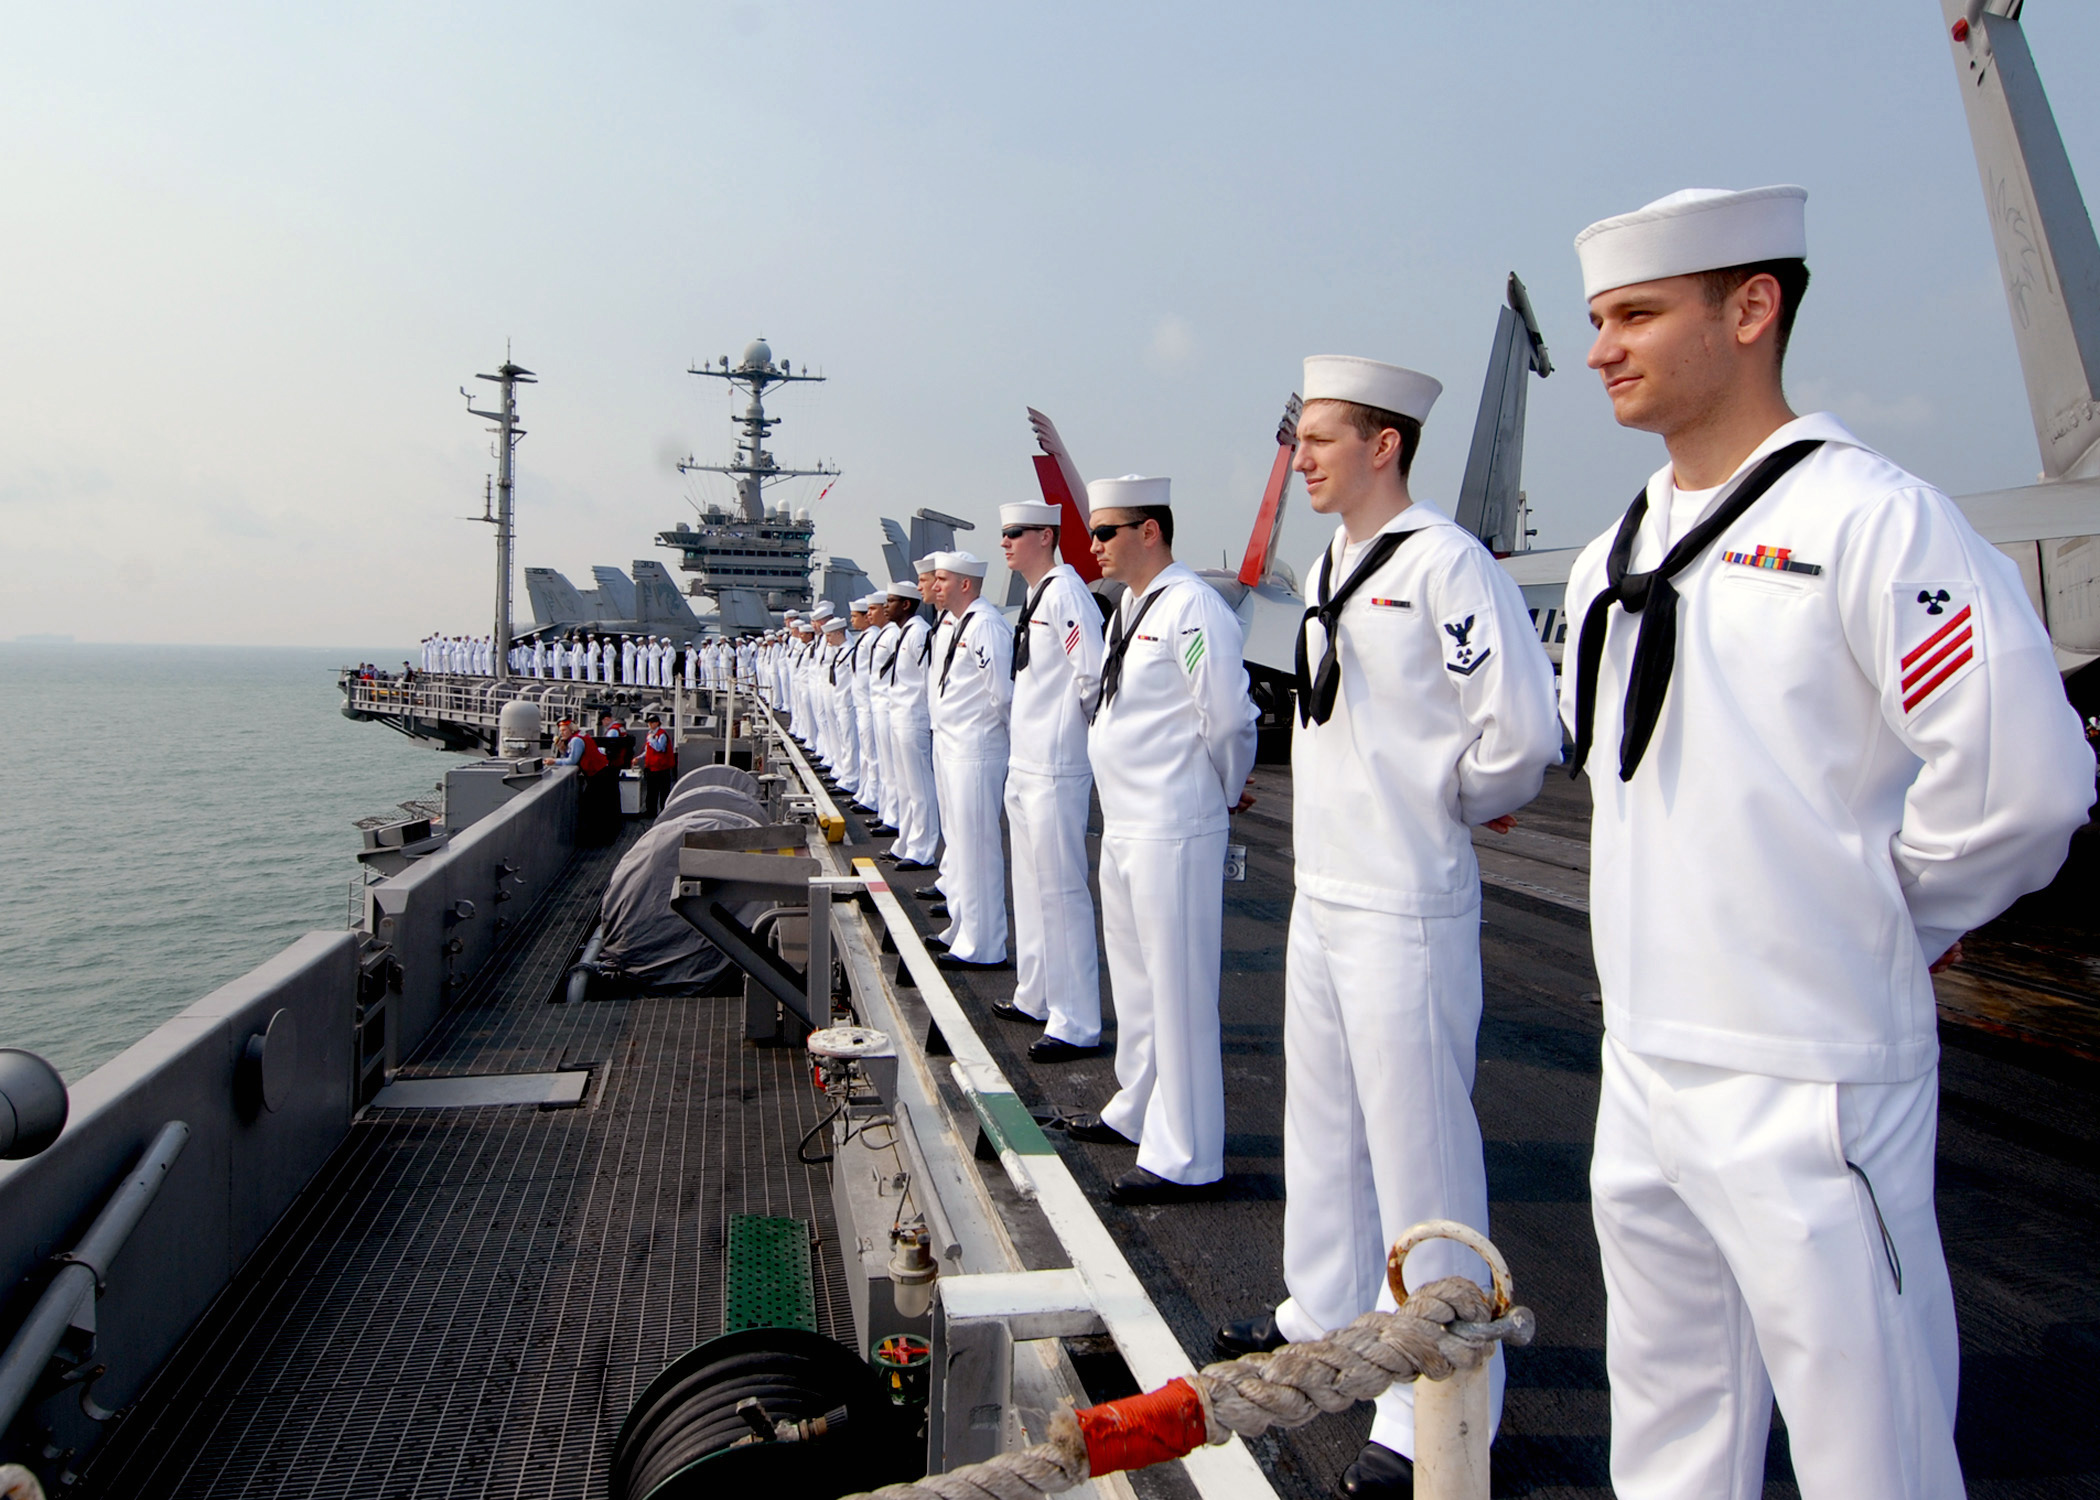 File:US Navy 090802-N-6720T-045 Sailors man the rails aboard the ...